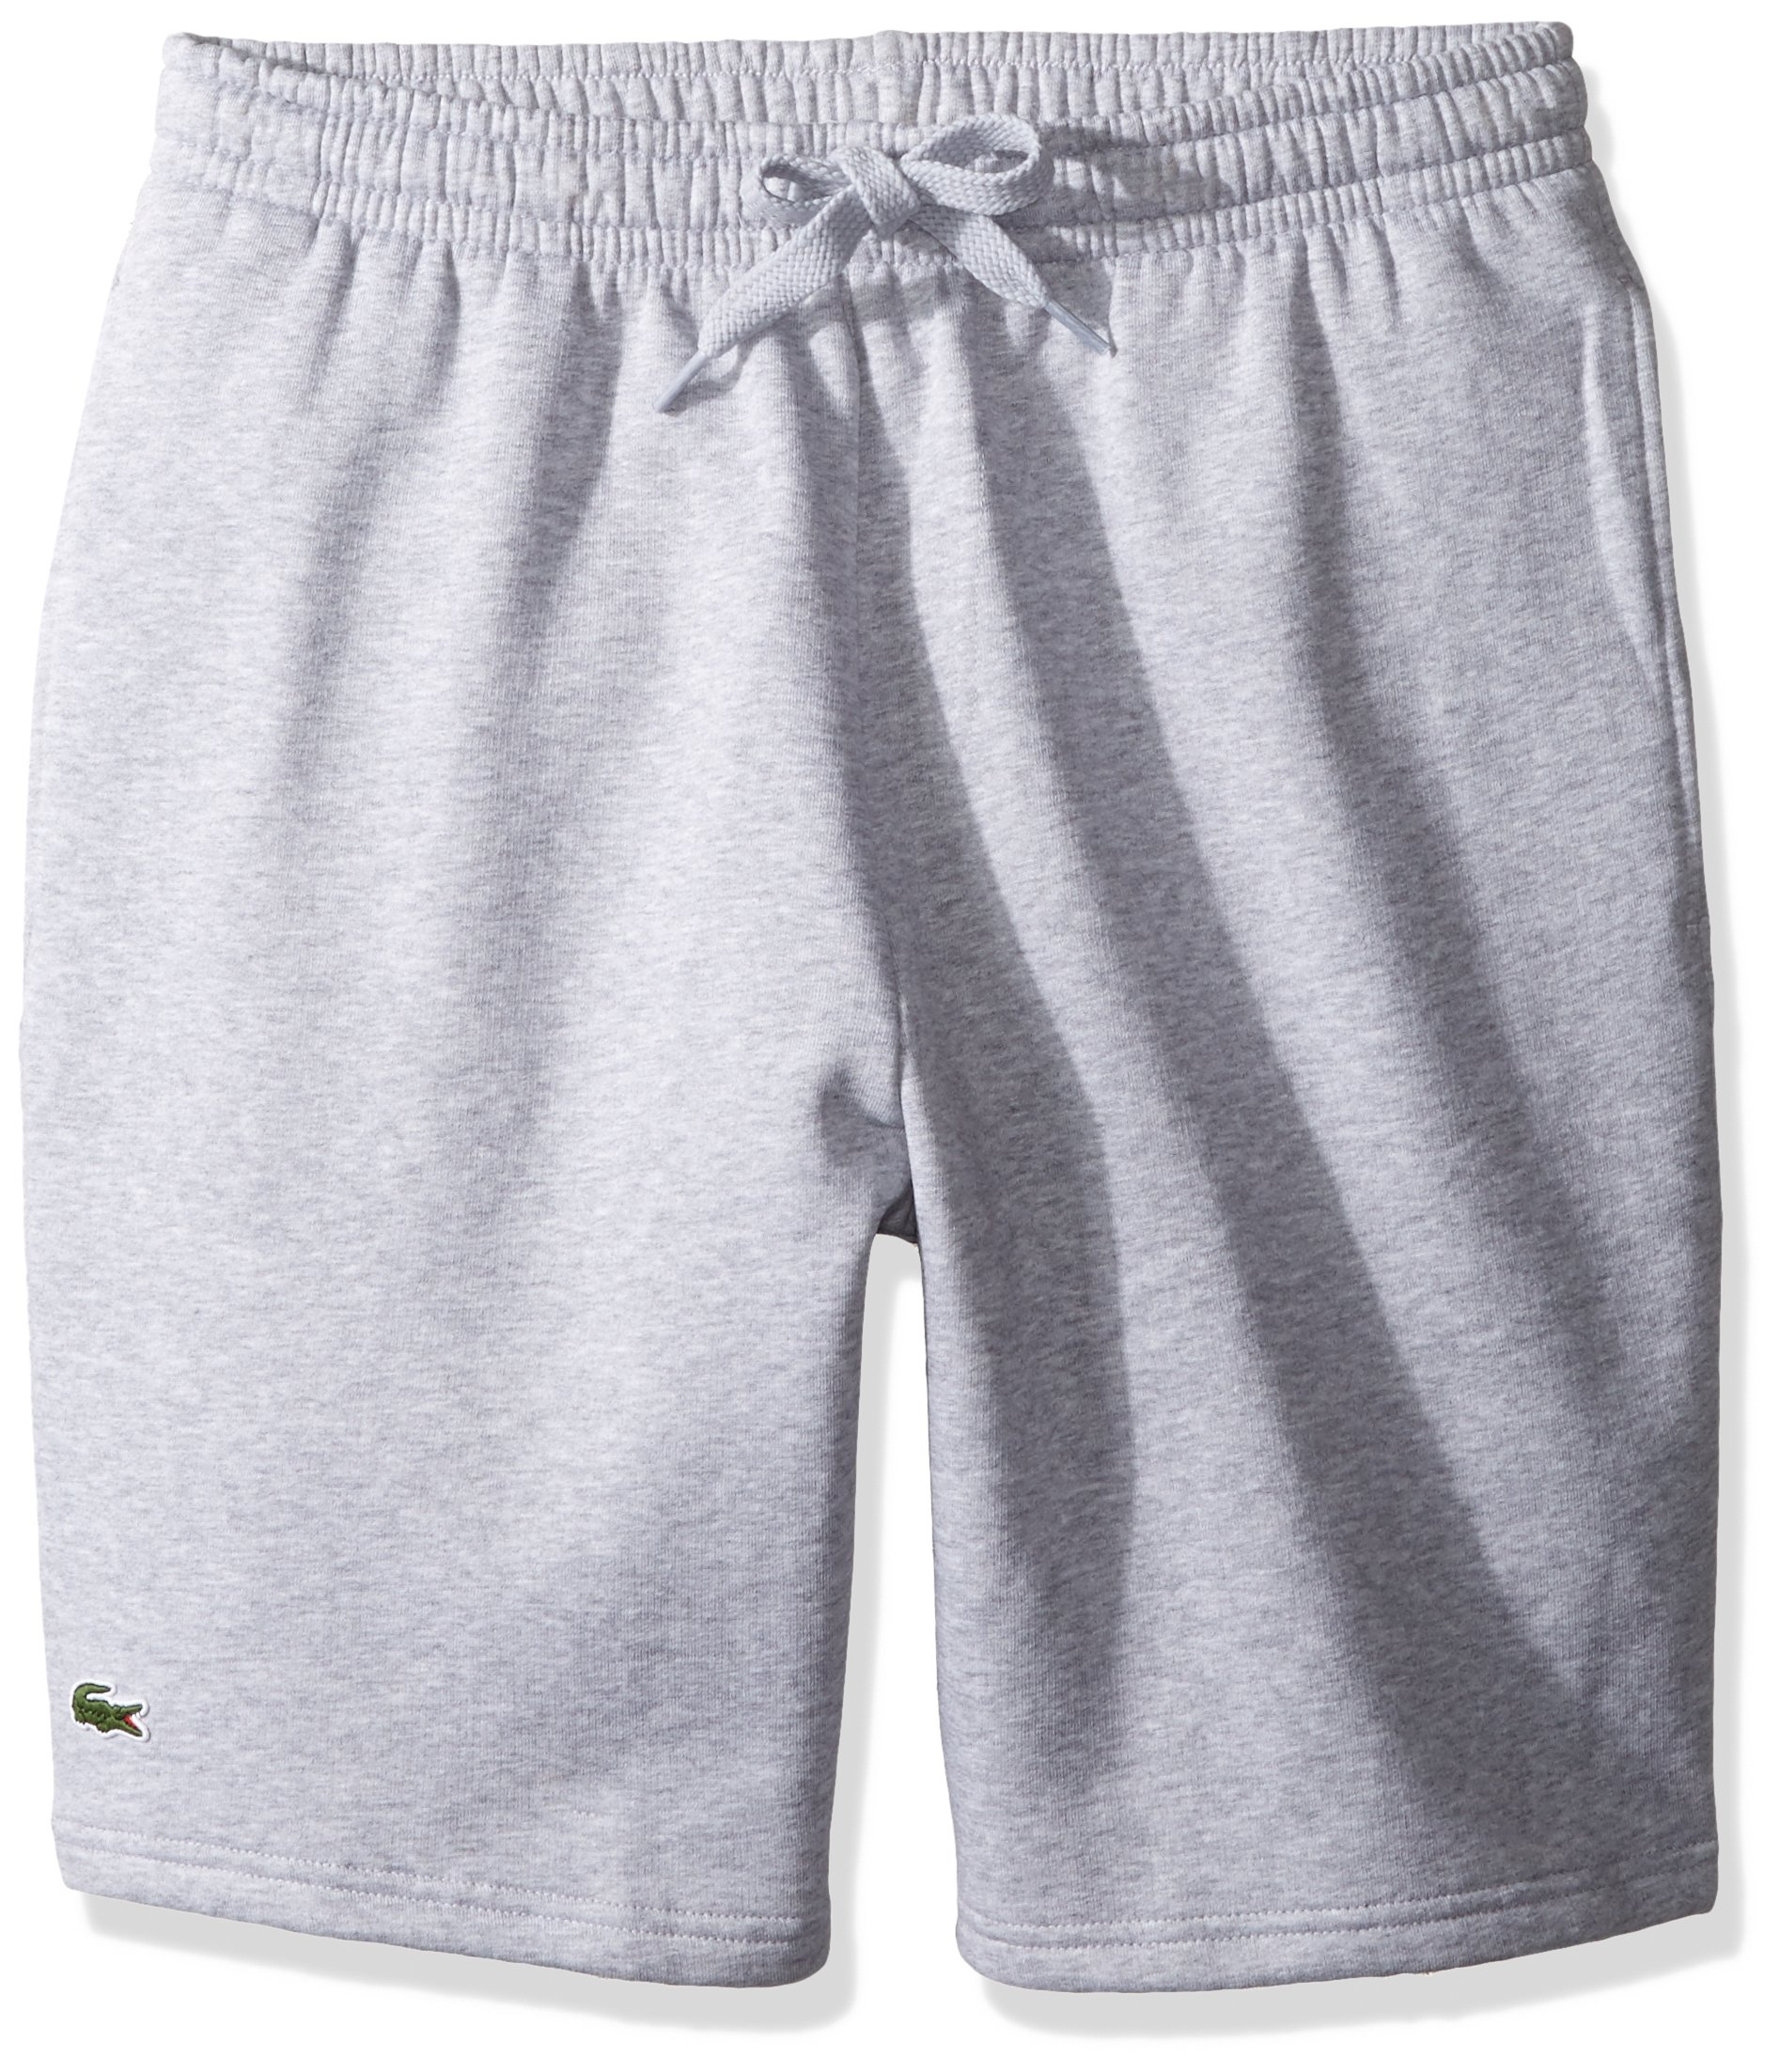 abb9b1dd2f0e7c Galleon - Lacoste Men s Sport Fleece Short